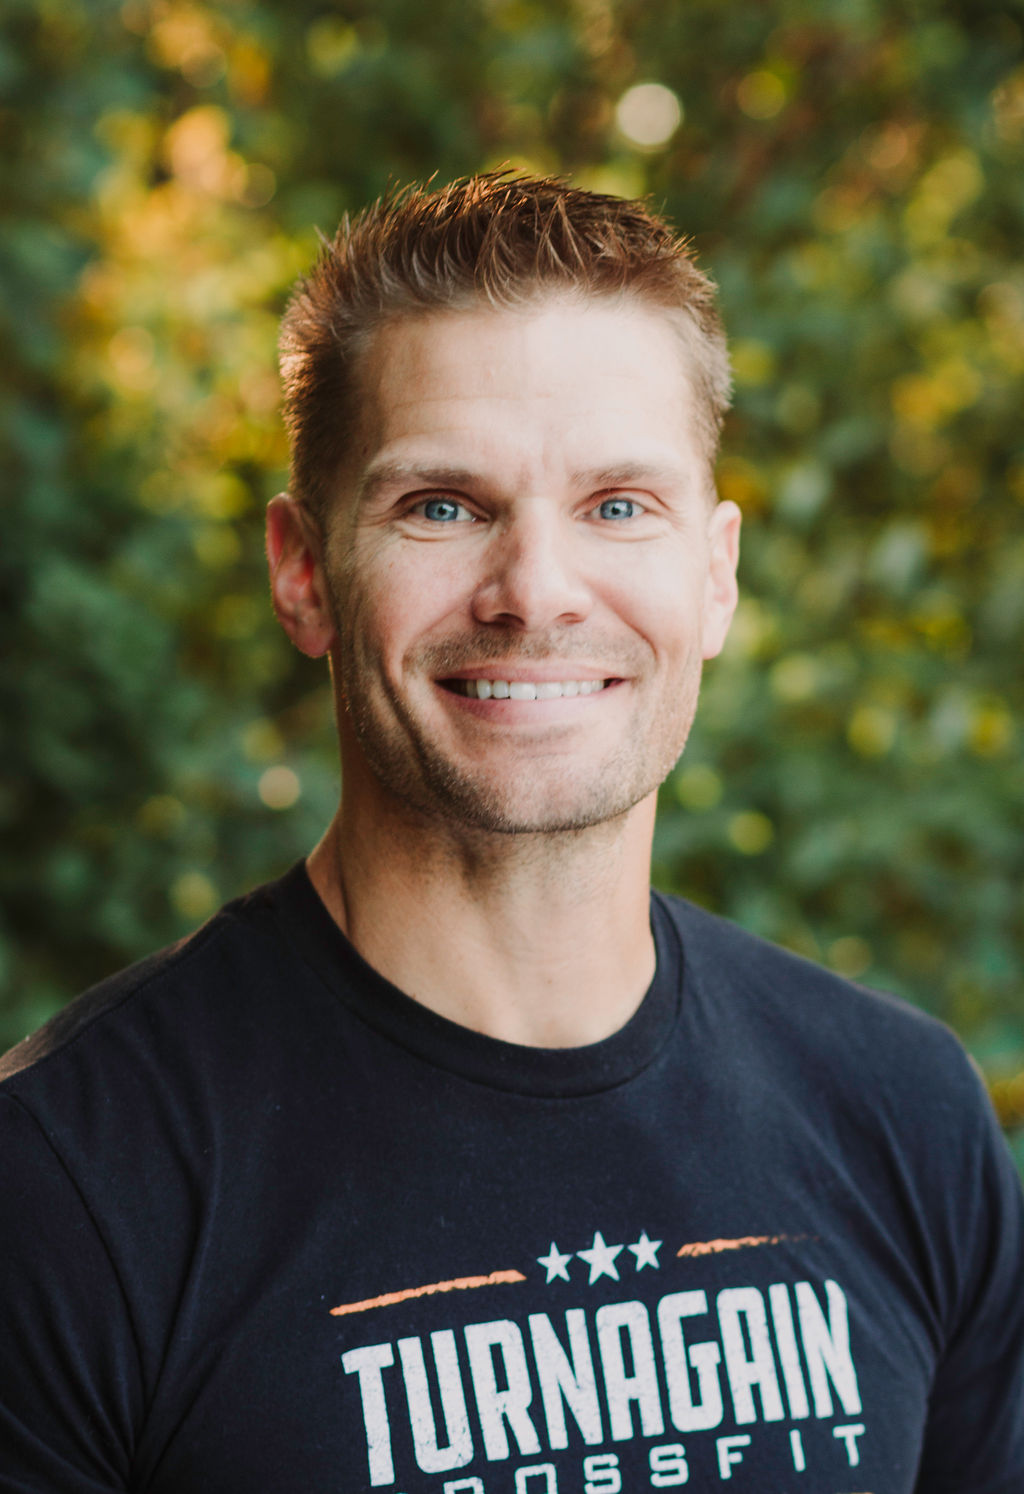 """Steve Gasser CF-L1 - Bonus Credentials:  -Prior collegiate athlete / training programs -Sports psychologyDay-Job: Engineer / Project ManagerBeen """"CrossFit-ing"""" since 2013 ish Why Turnagain CrossFit? We advance TOGETHER.A few of my favorite things: Family, Food & Football.When I'm not at CrossFit…I'm likely coaching youth sports, biking or vacationing in the sun."""